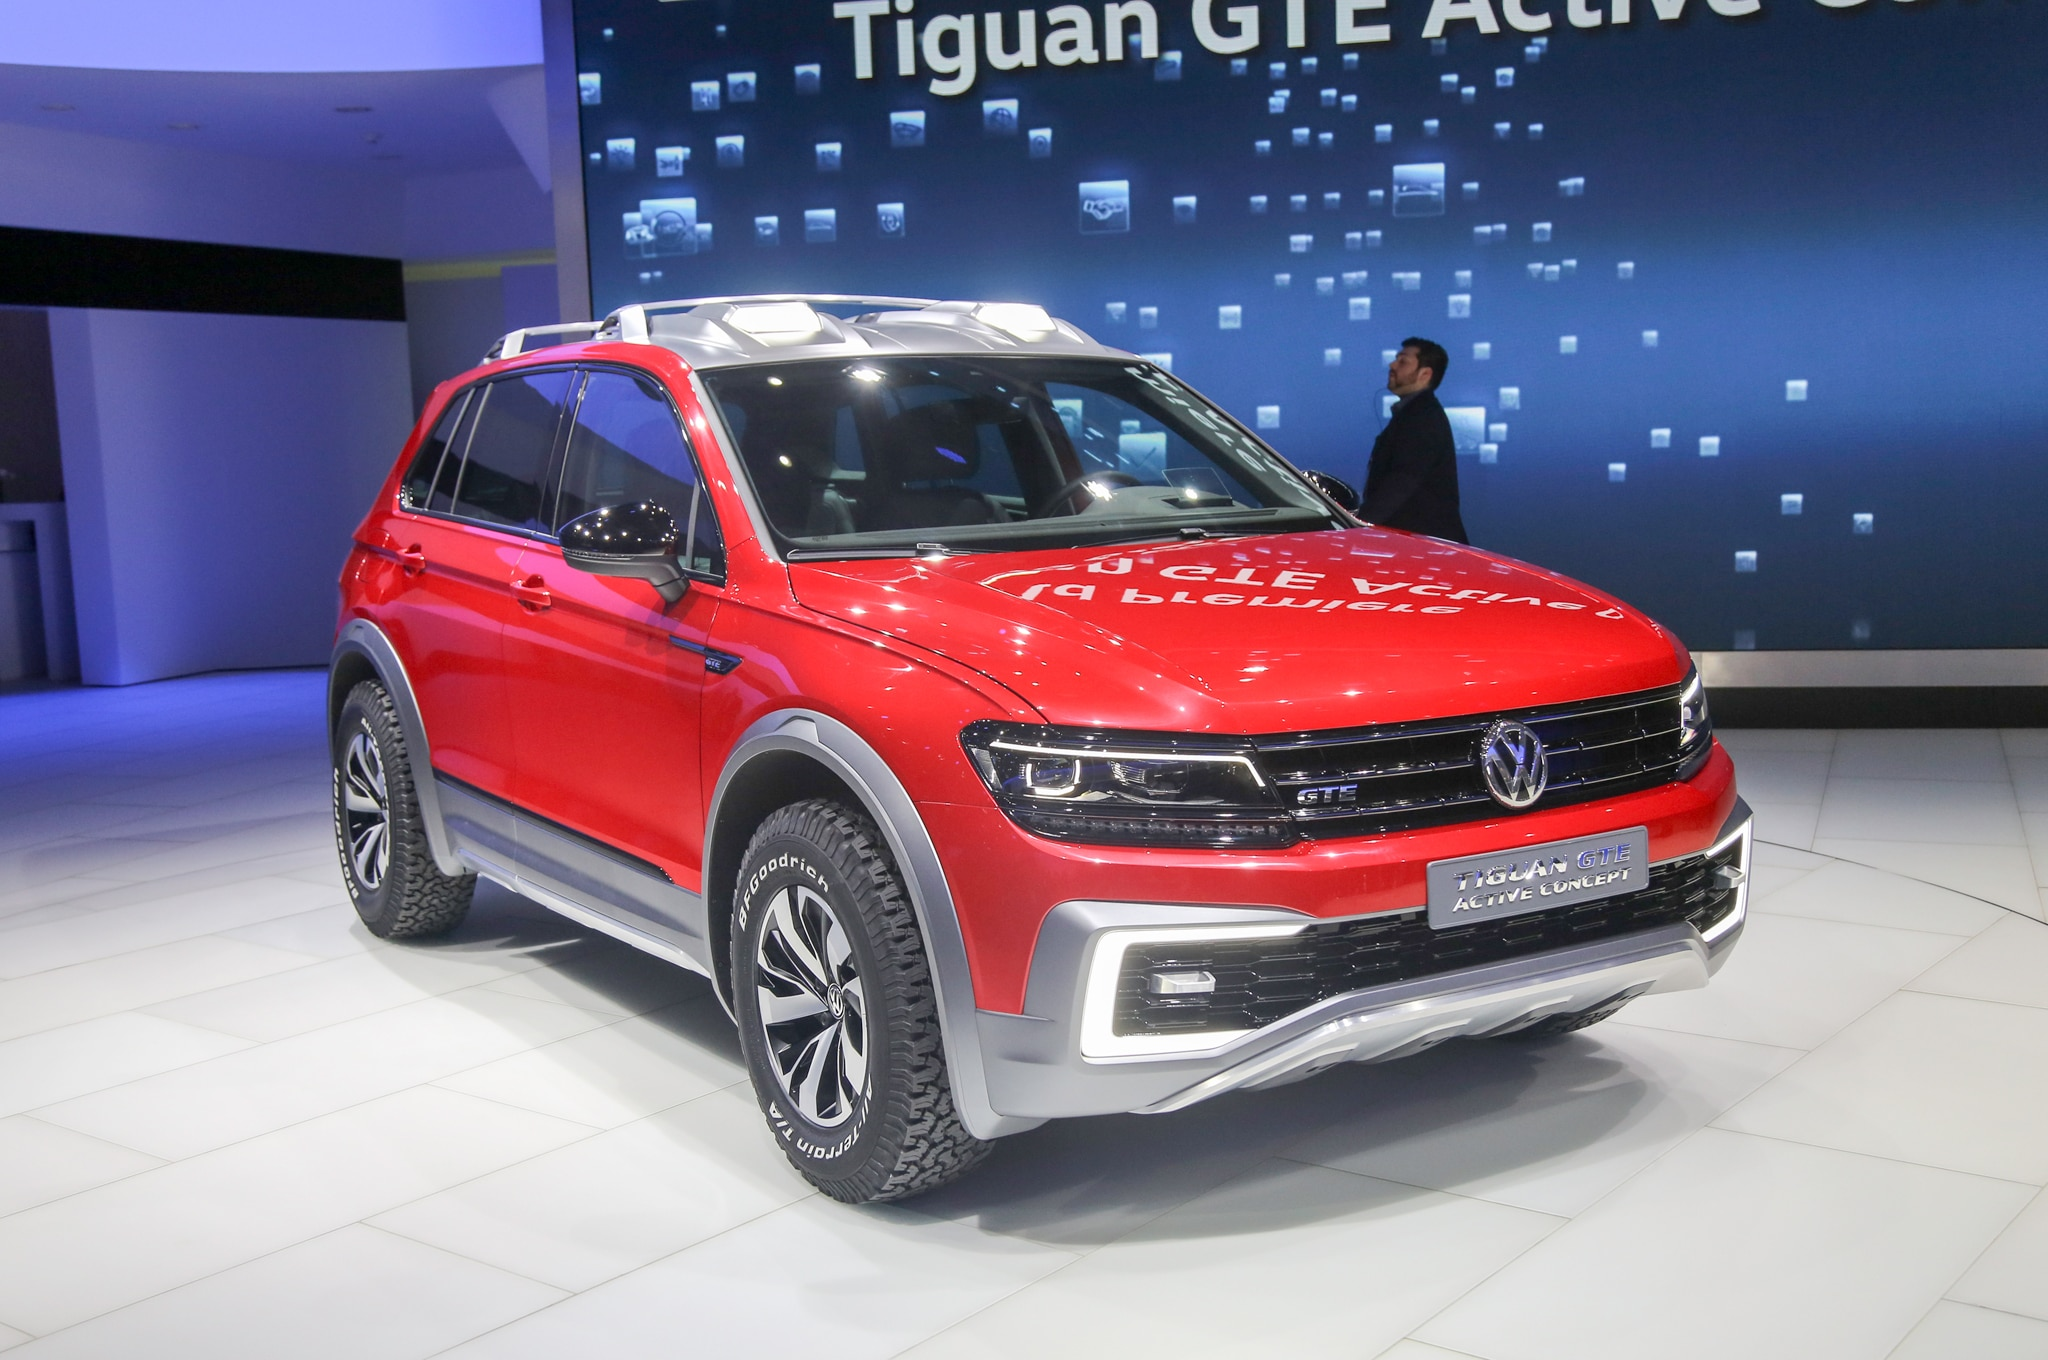 volkswagen tiguan gte active concept is an awd hybrid crossover. Black Bedroom Furniture Sets. Home Design Ideas